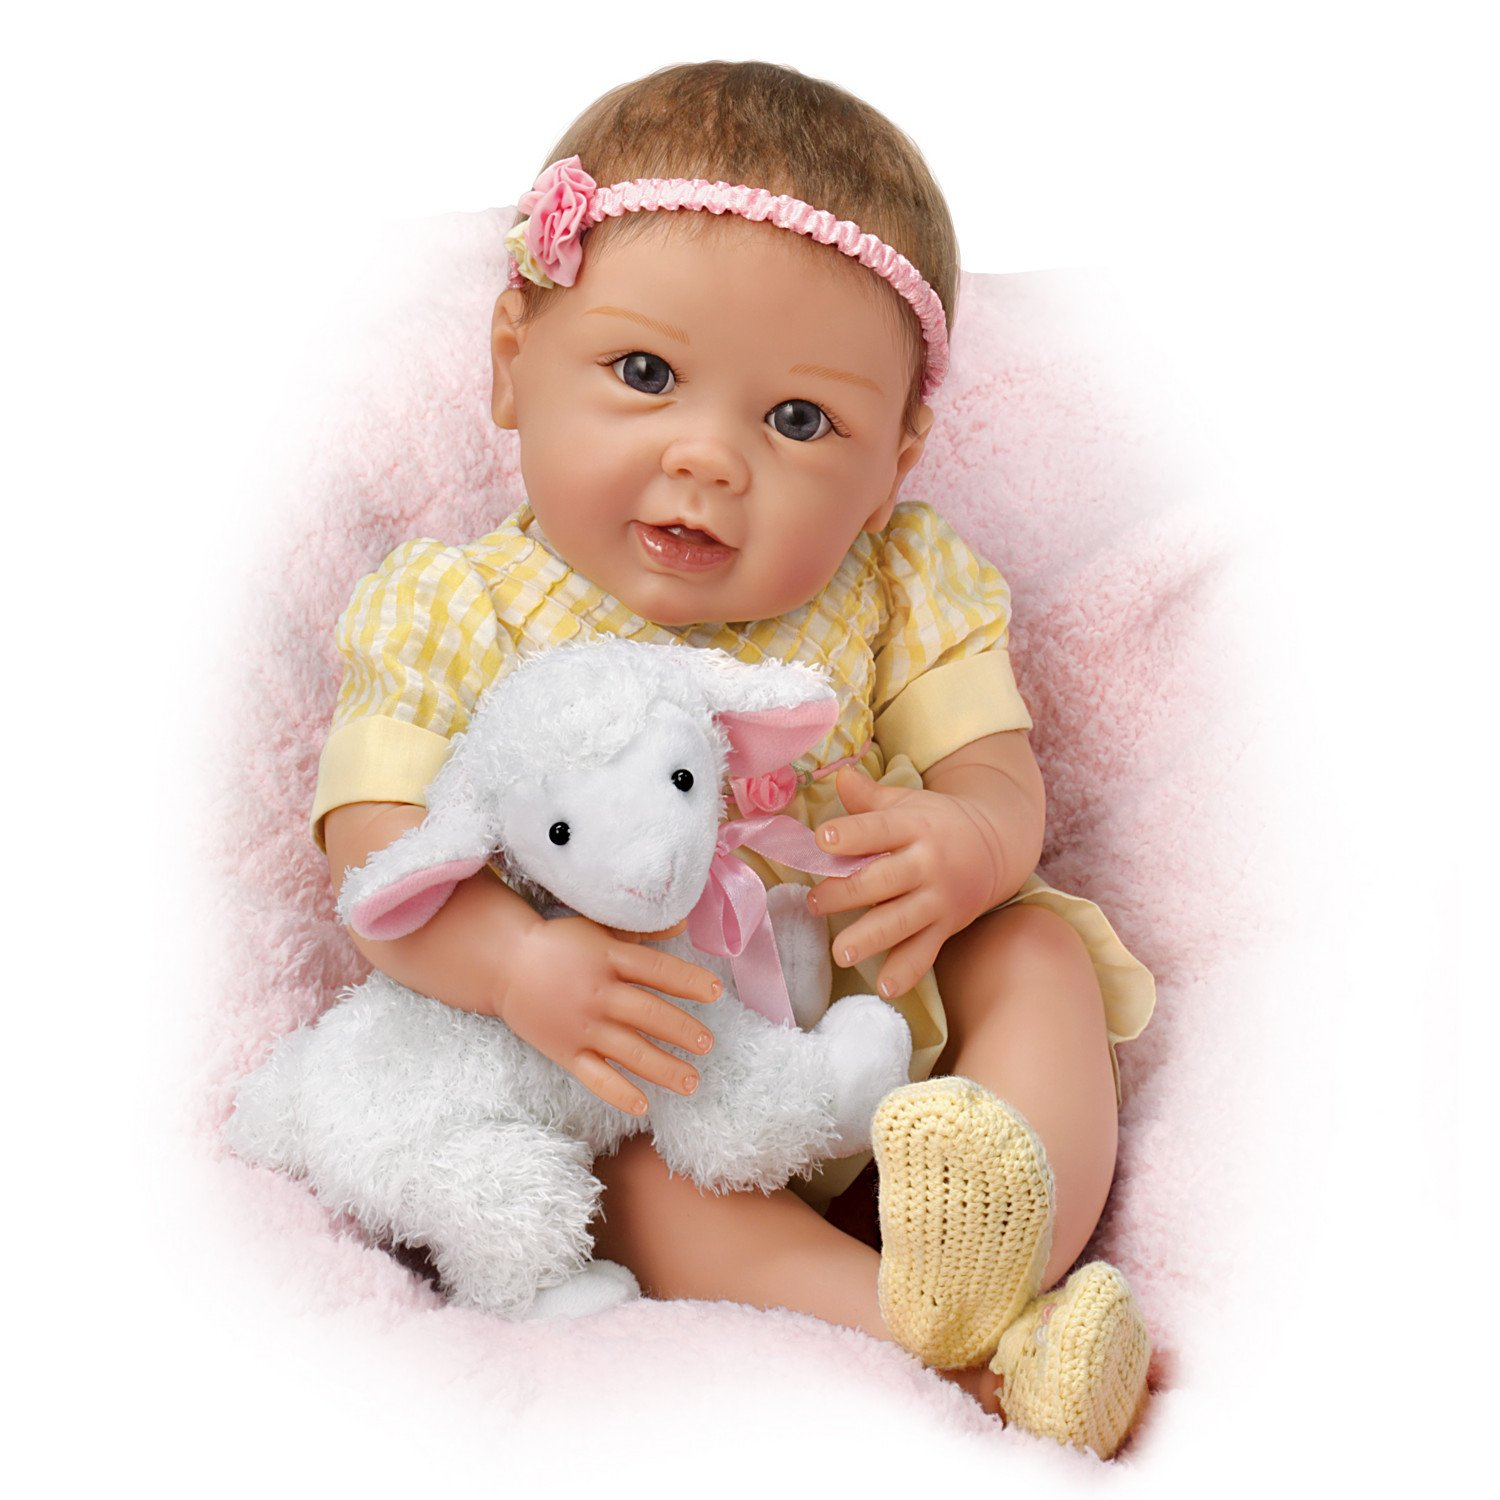 Littles Lamb Ashton Drake Baby Doll With Toy Lamb by Linda Murray by The Ashton-Drake Galleries